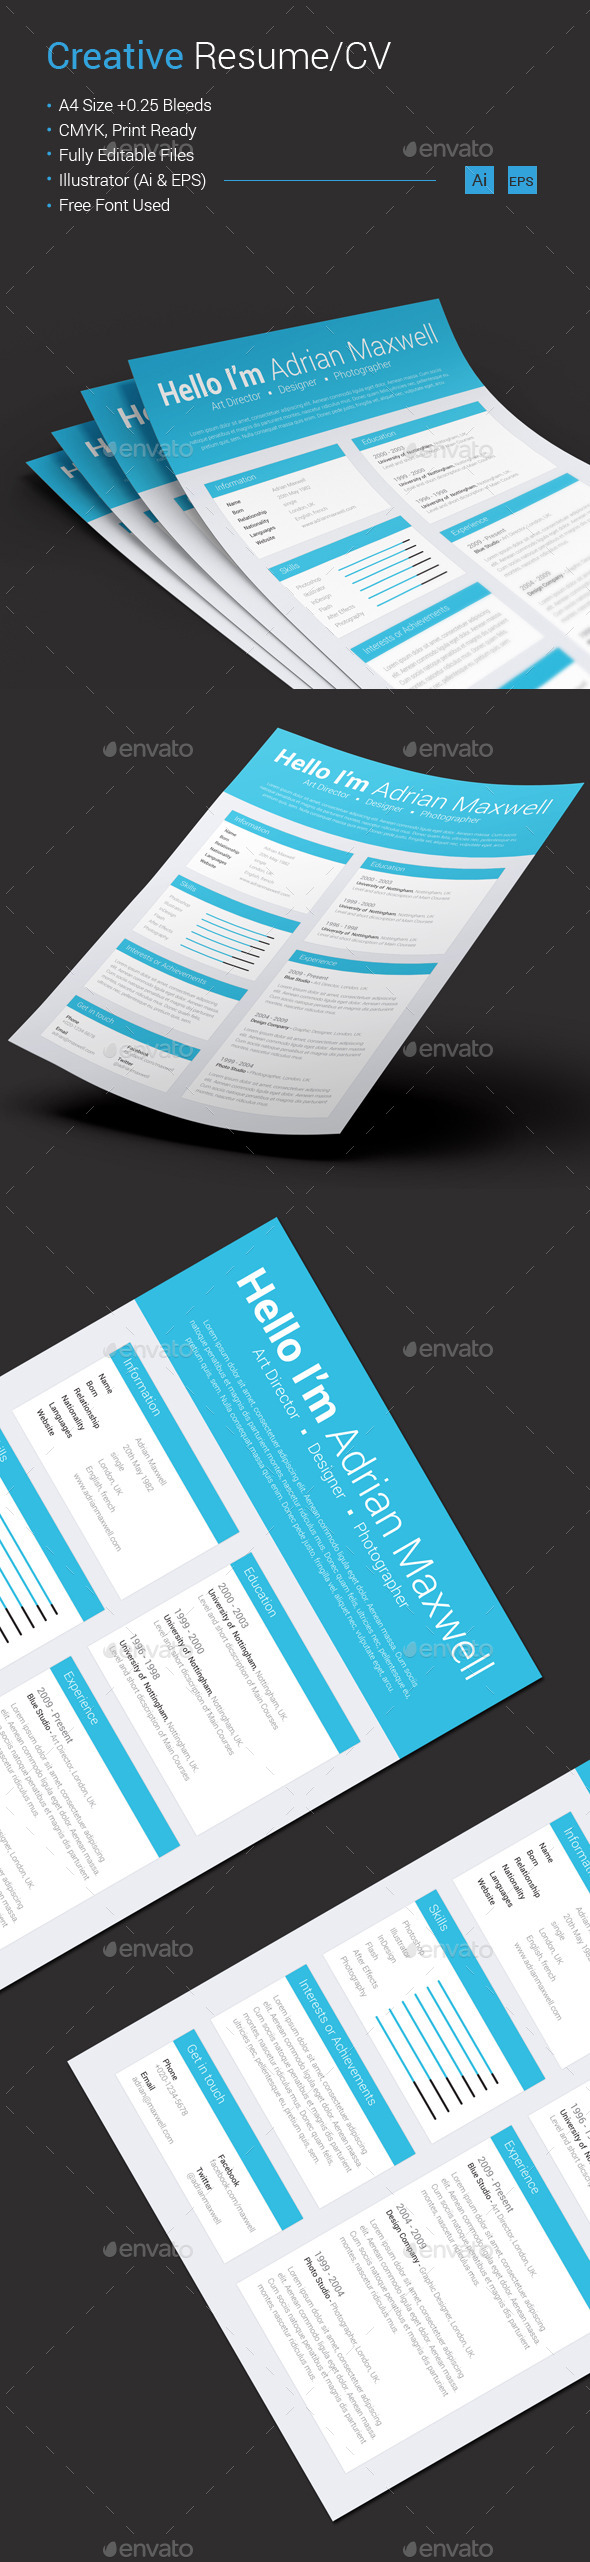 GraphicRiver Creative Resume CV 10602804